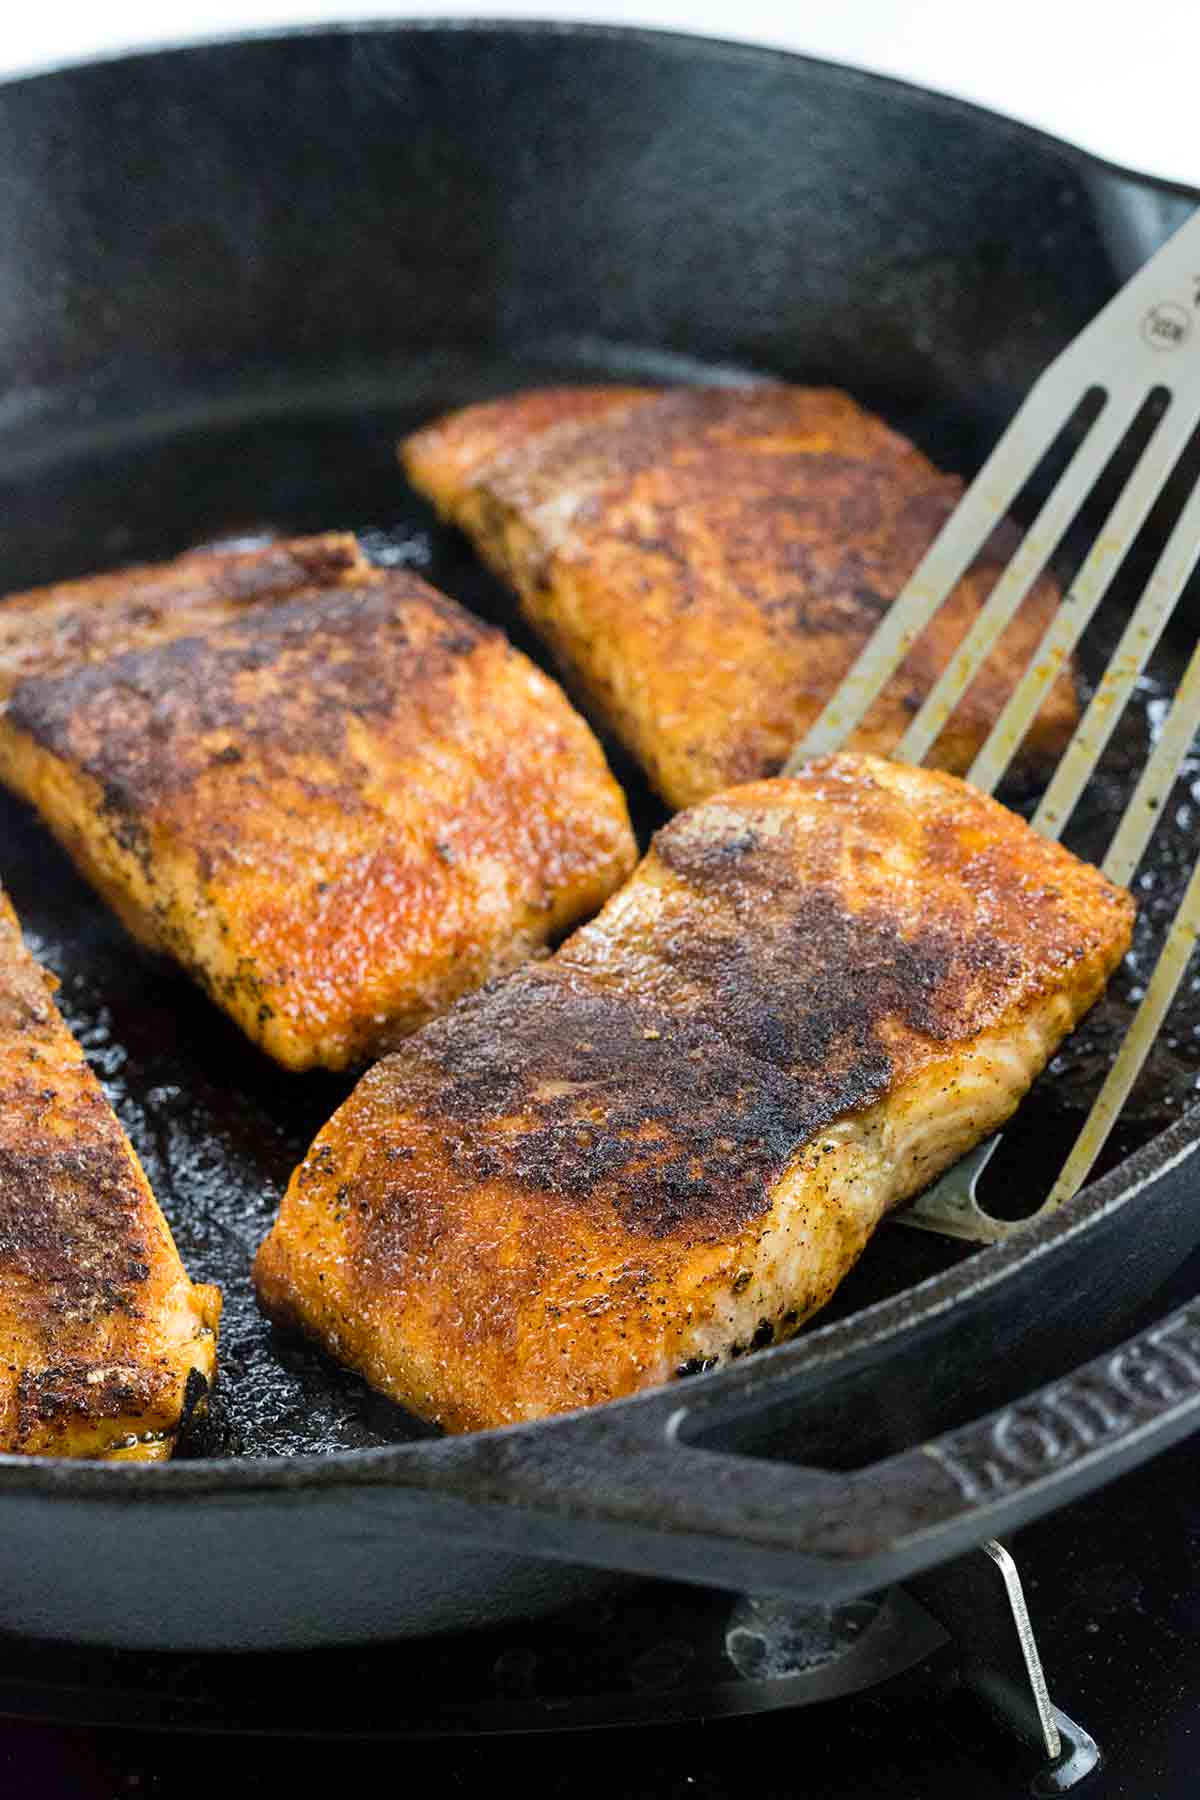 Cooking fish in a cast iron skillet